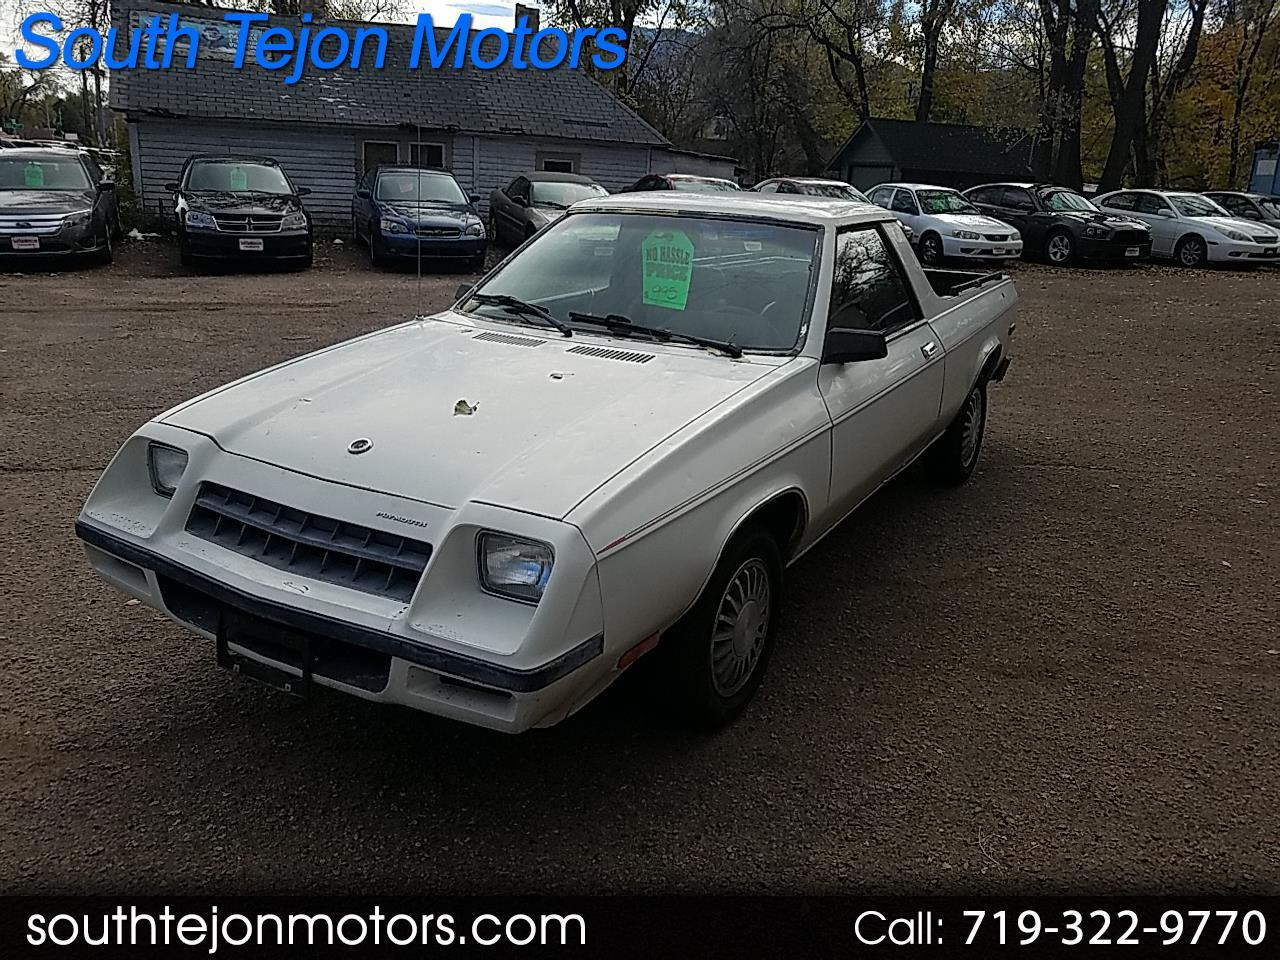 1983 Plymouth Scamp $995